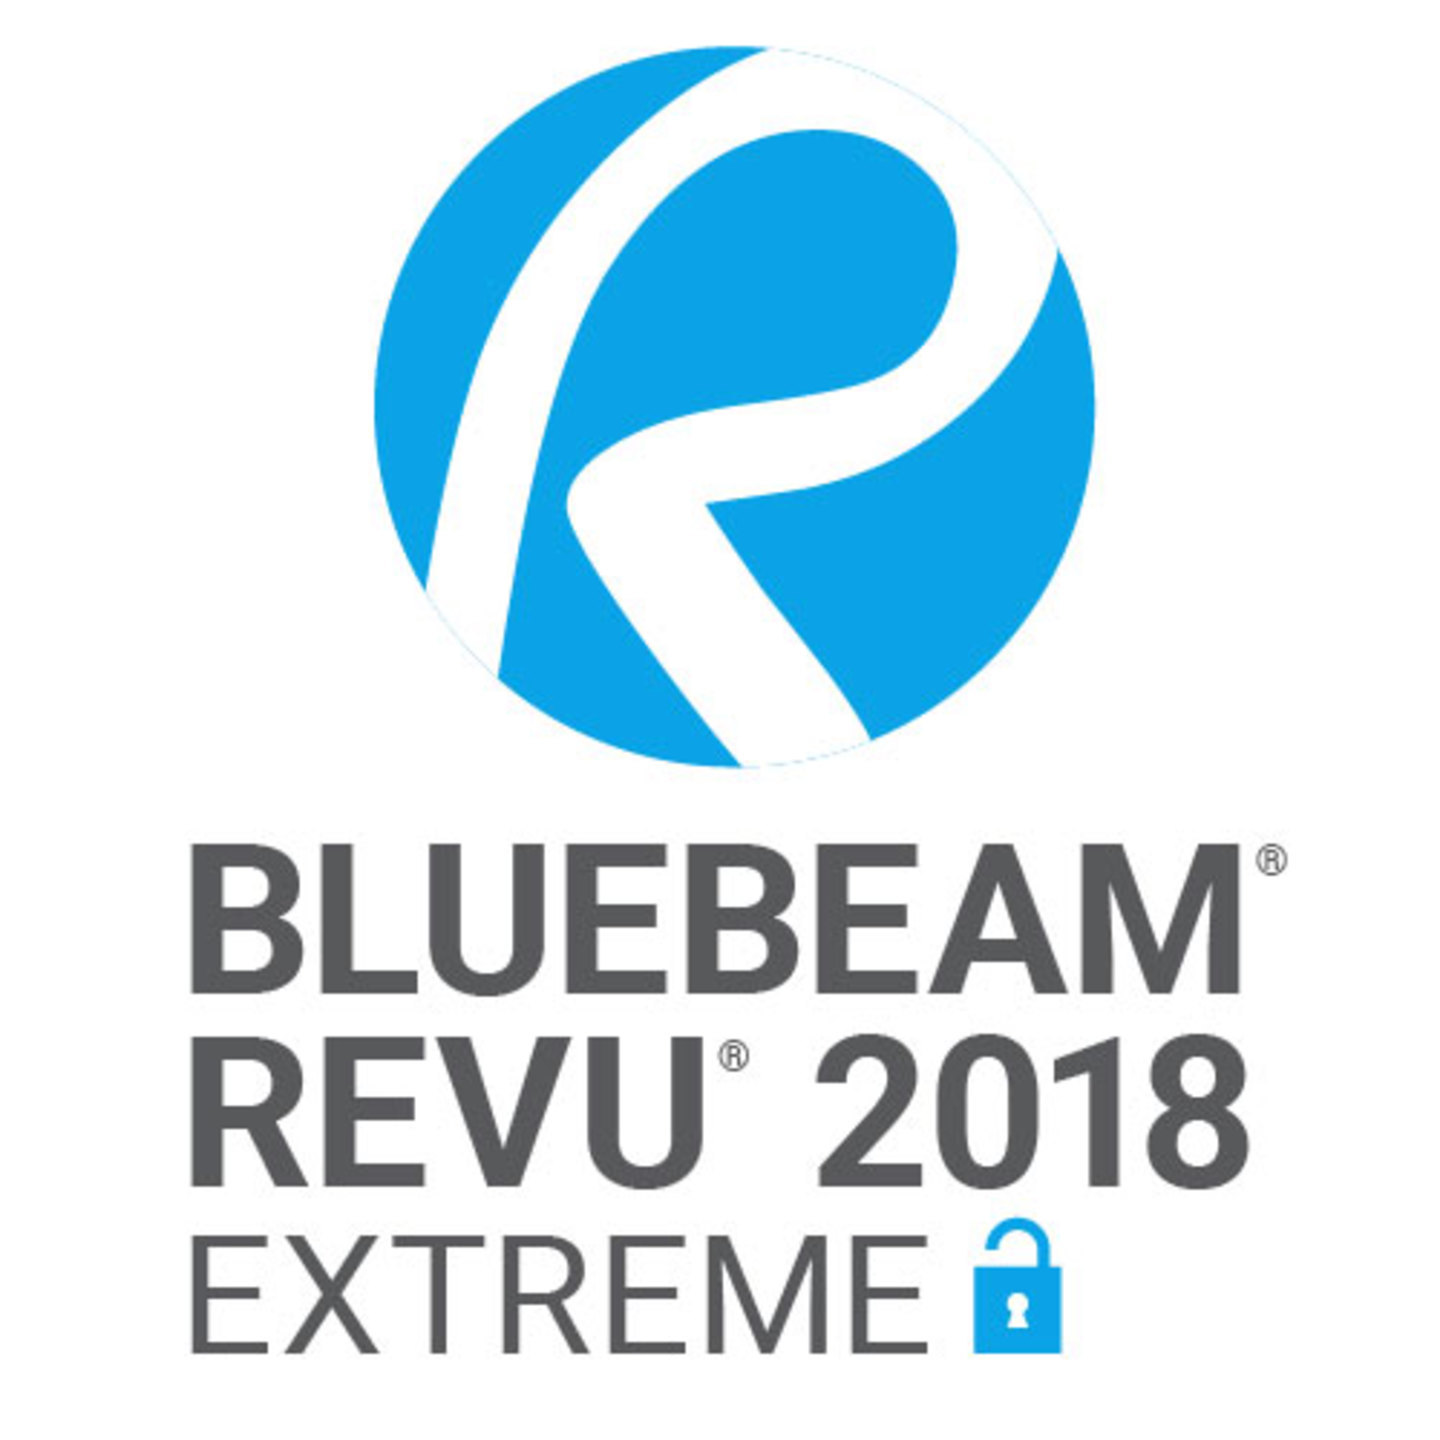 BLUEBEAM REVU 2018 EXTREME-NEW OPEN LICENSES SUBSCRIPTION